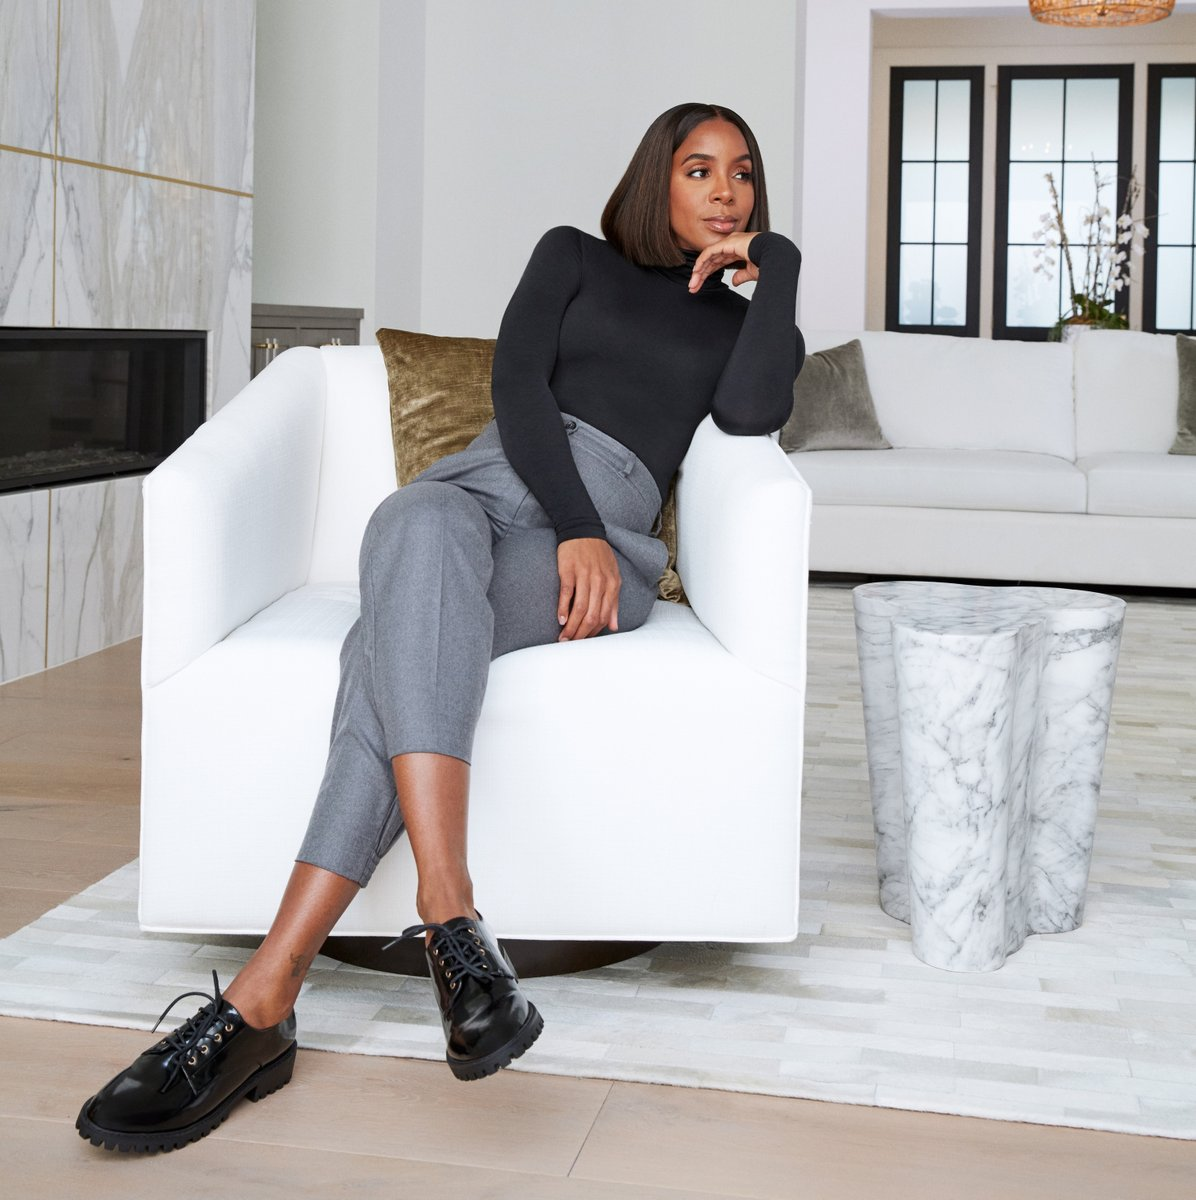 """""""Shoes play the biggest role in inspiring my personal style. I always start my outfit with the shoes. How I get dressed always depends on what the shoe is telling me to wear."""" - @kellyrowland  Shop the collection here: https://t.co/UQQ8Zf6uBy  #KellyRowlandxJustFab https://t.co/hMq2R5IM95"""